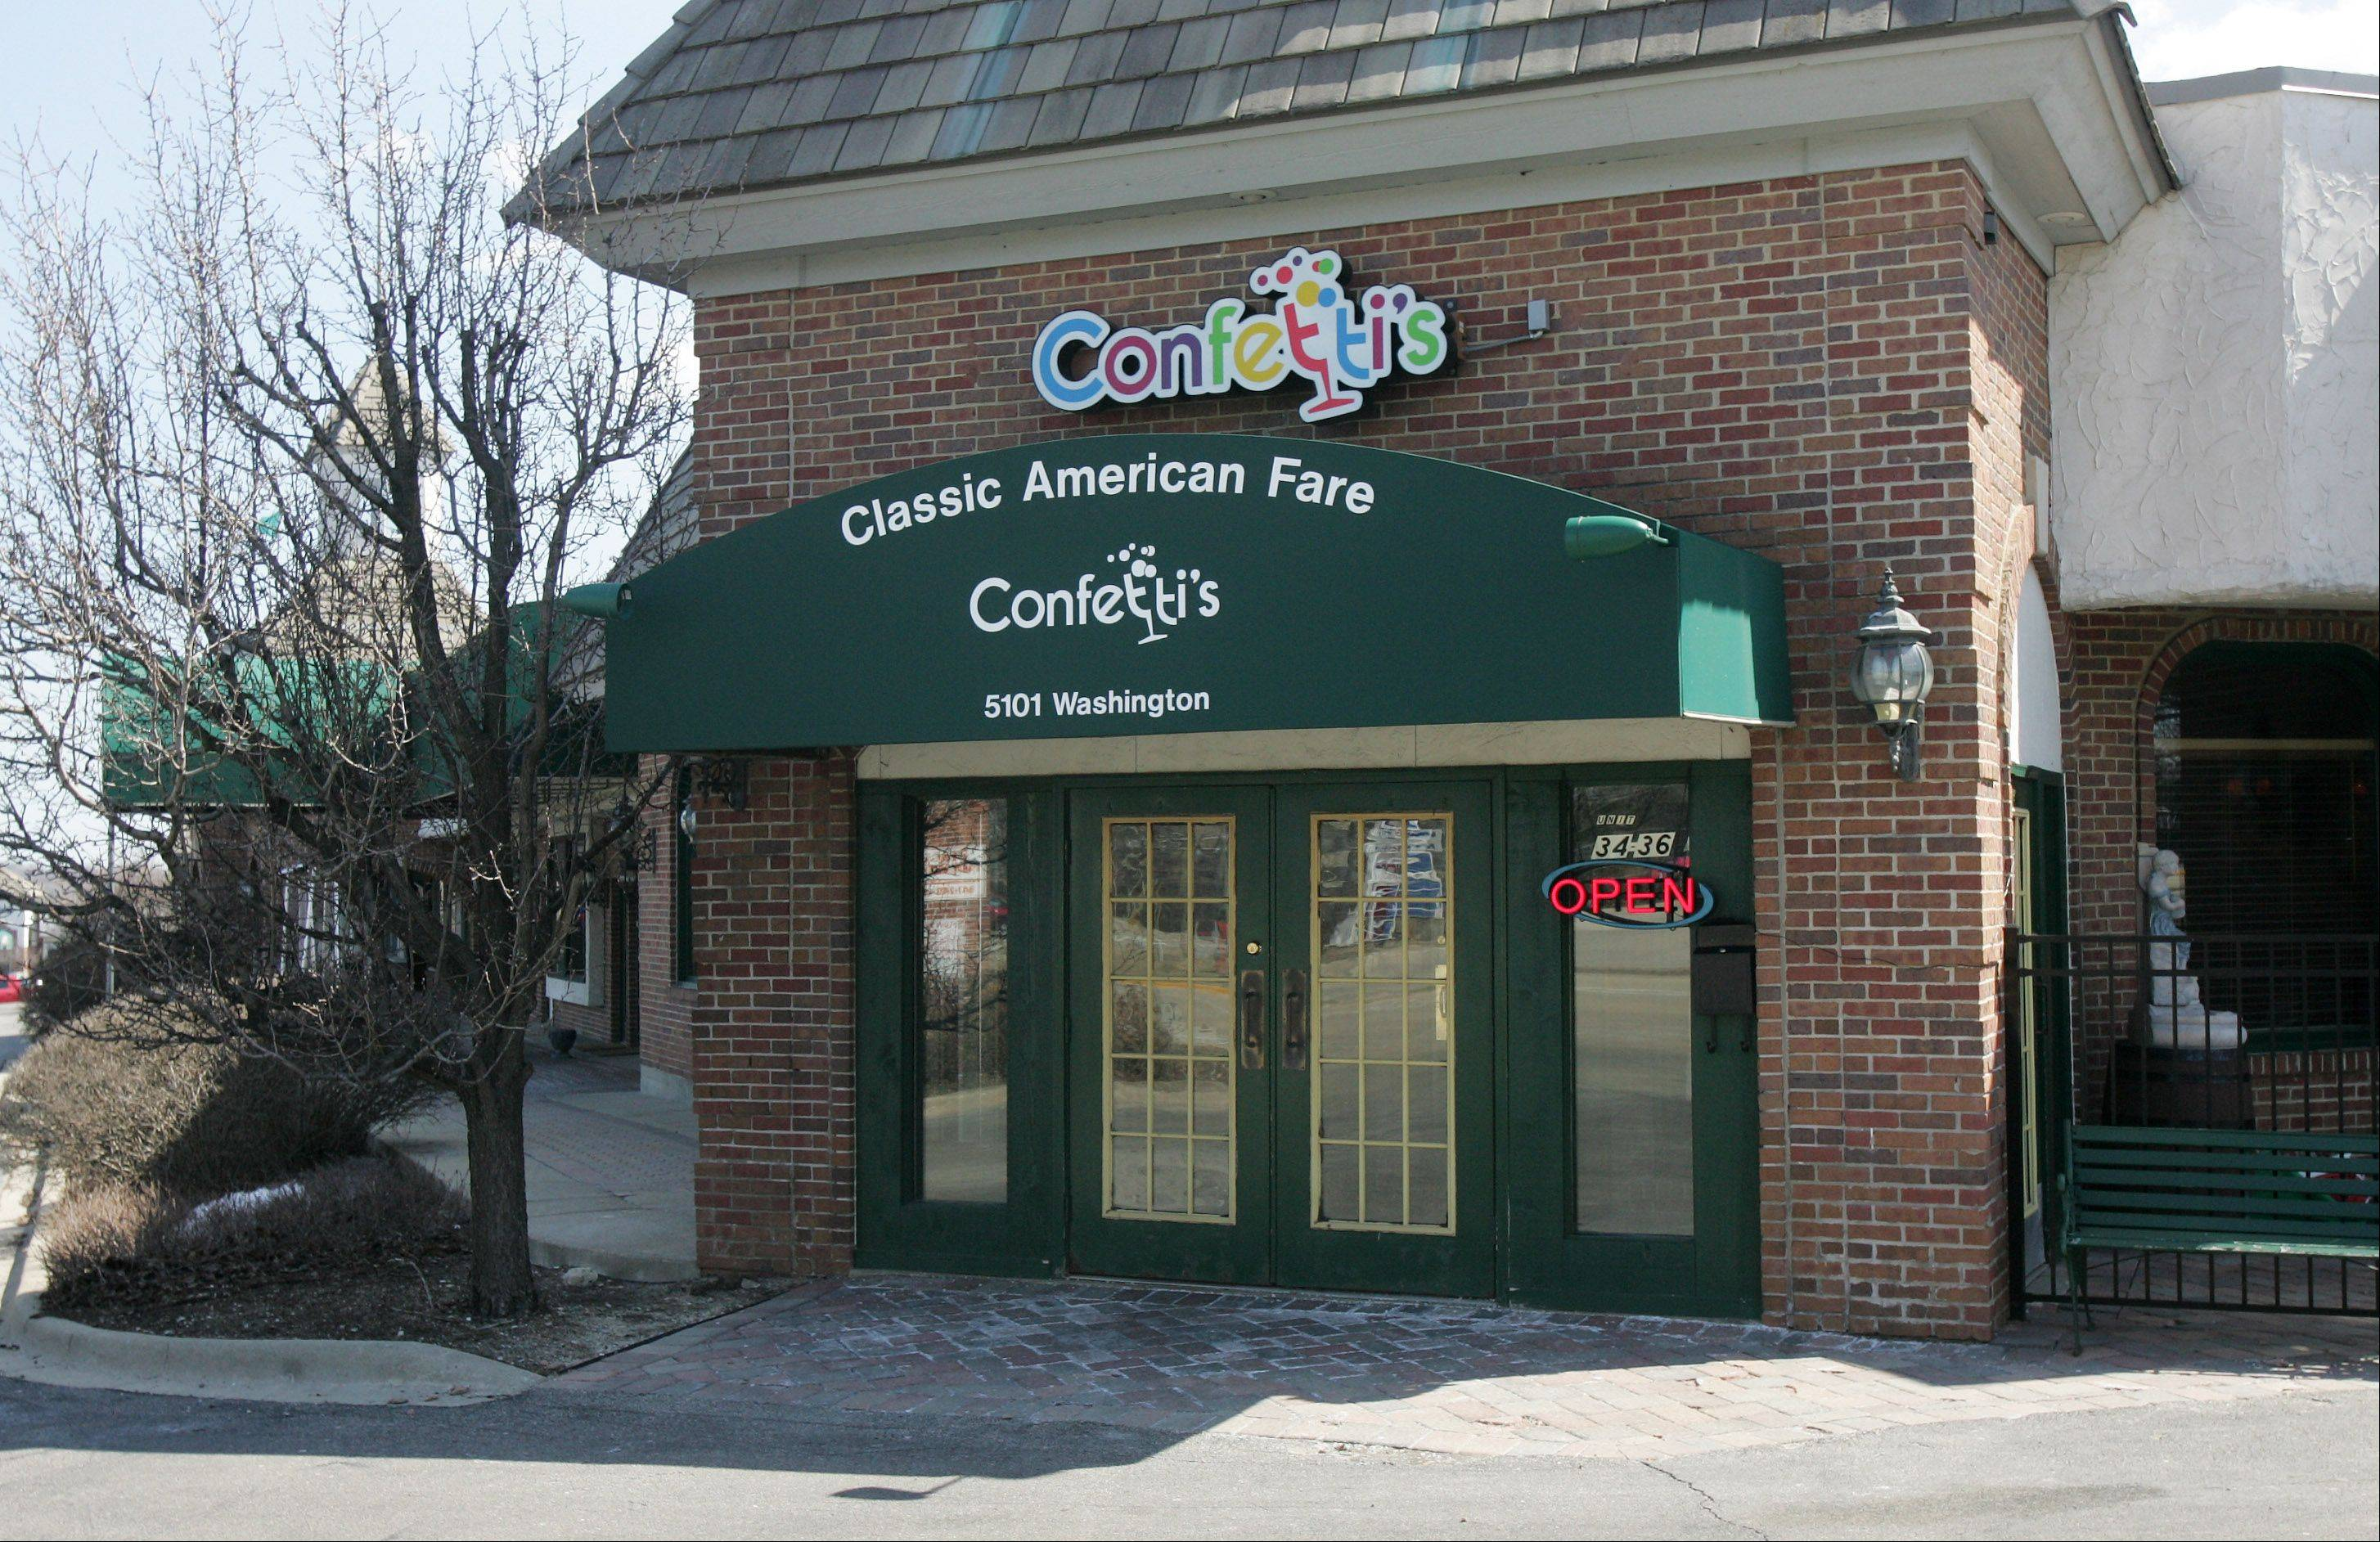 Confetti's in Gurnee opened in January 2013.